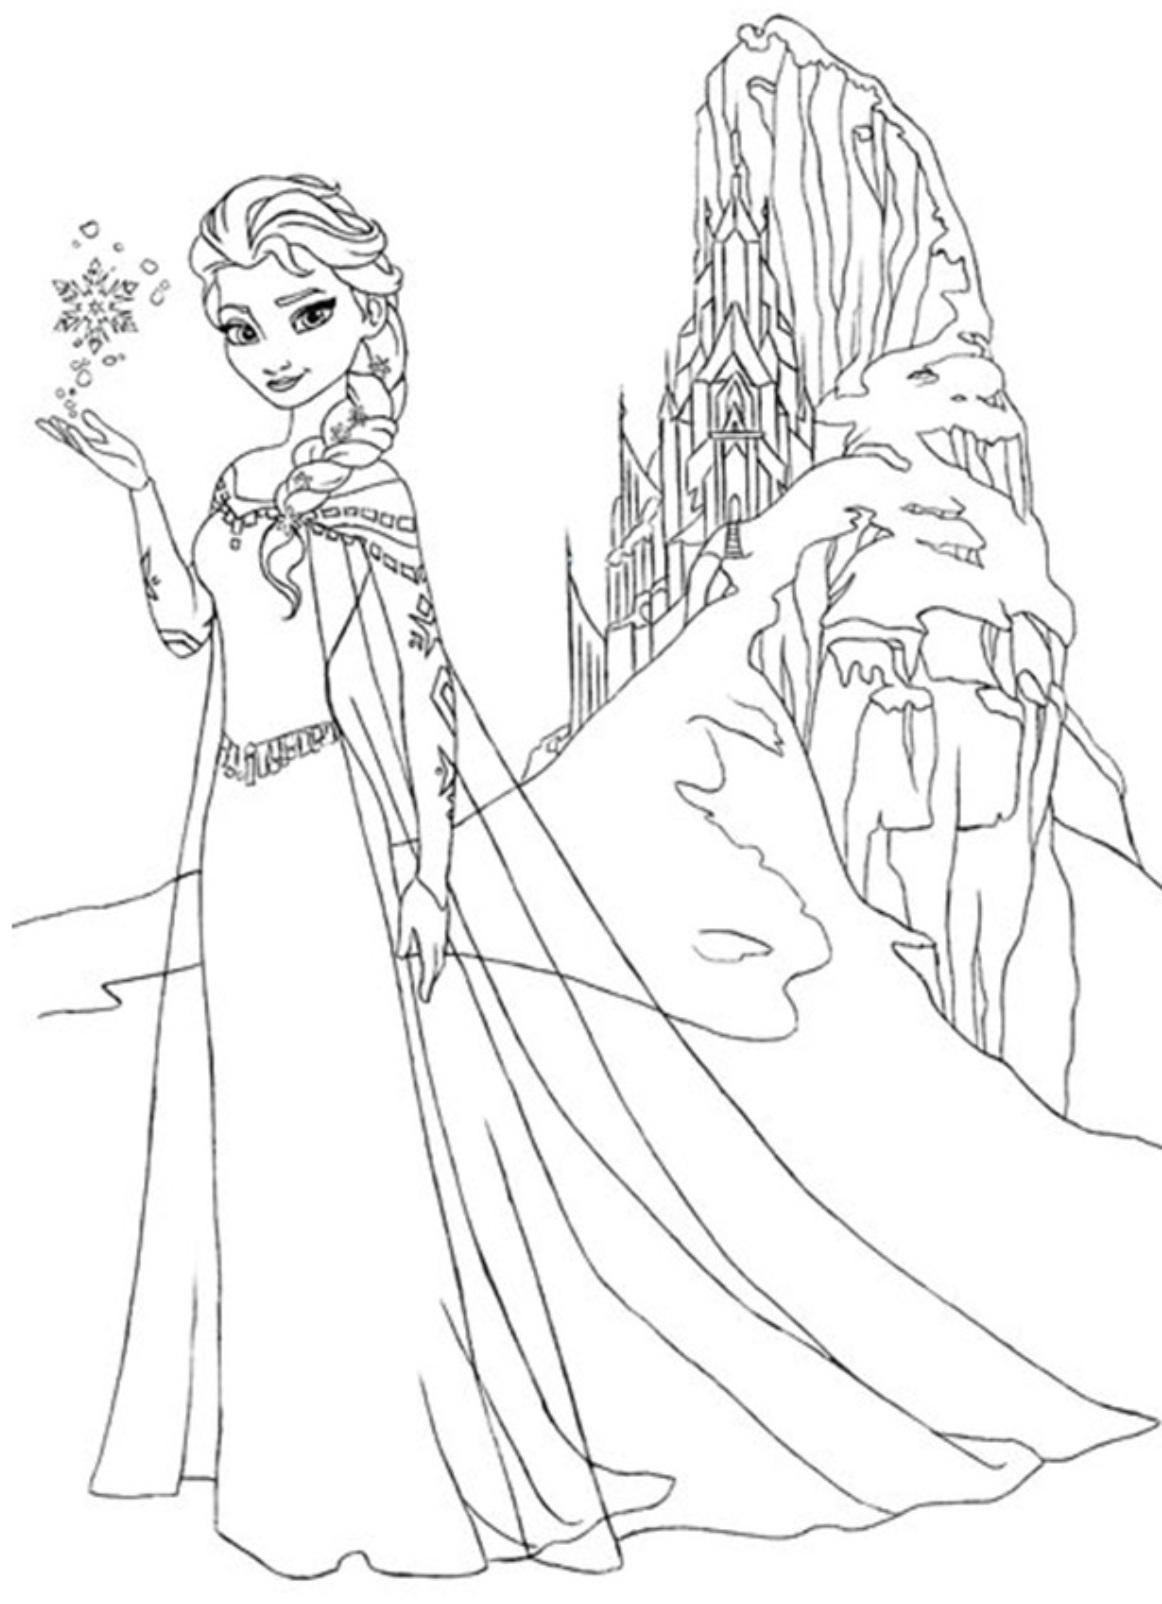 Elsa Drawing Outline At Getdrawings Com Free For Personal Use Elsa